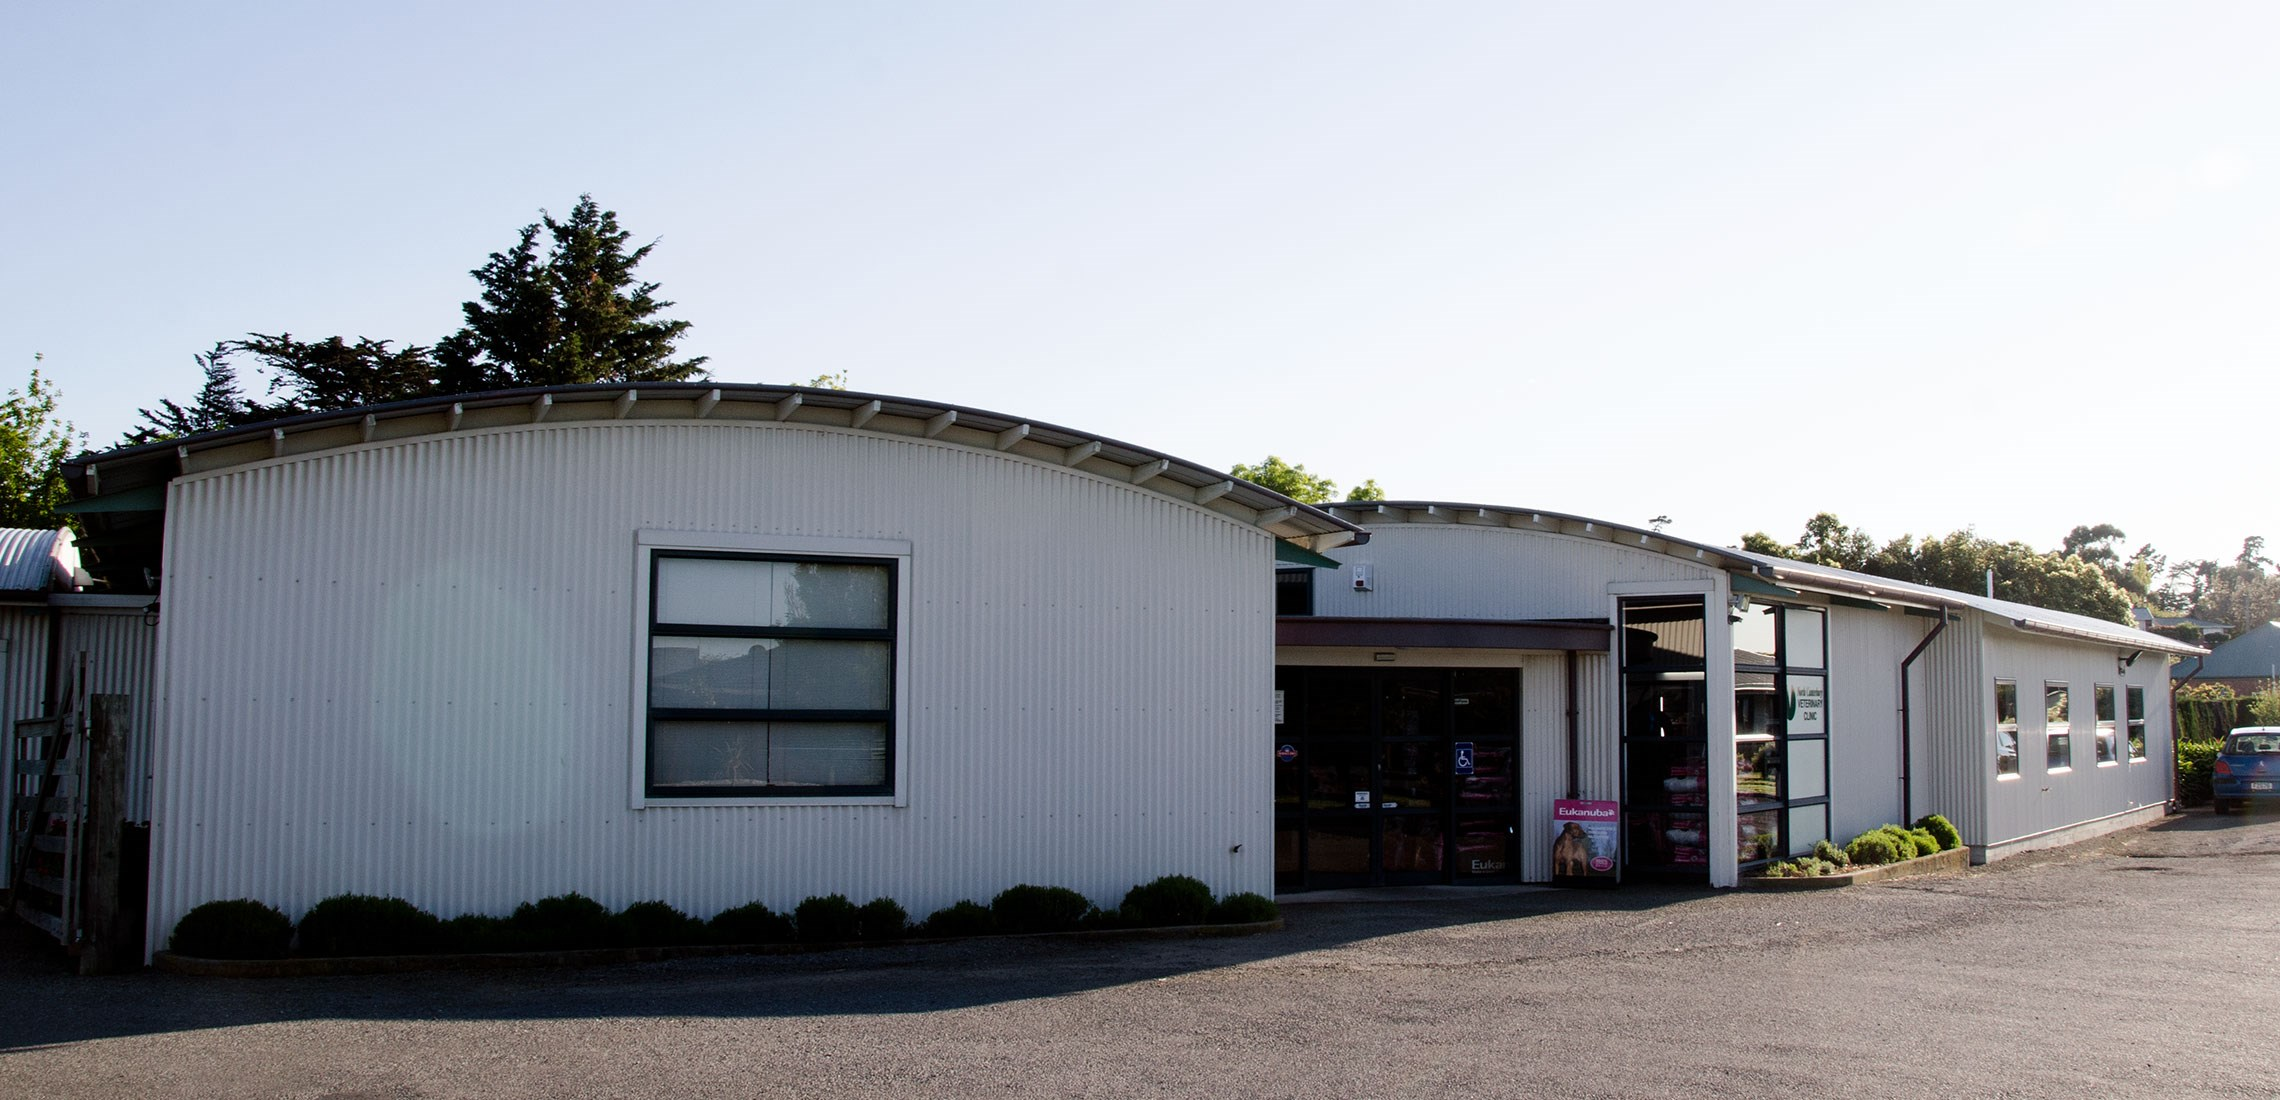 Exterior of the Amberley Vet Clinic